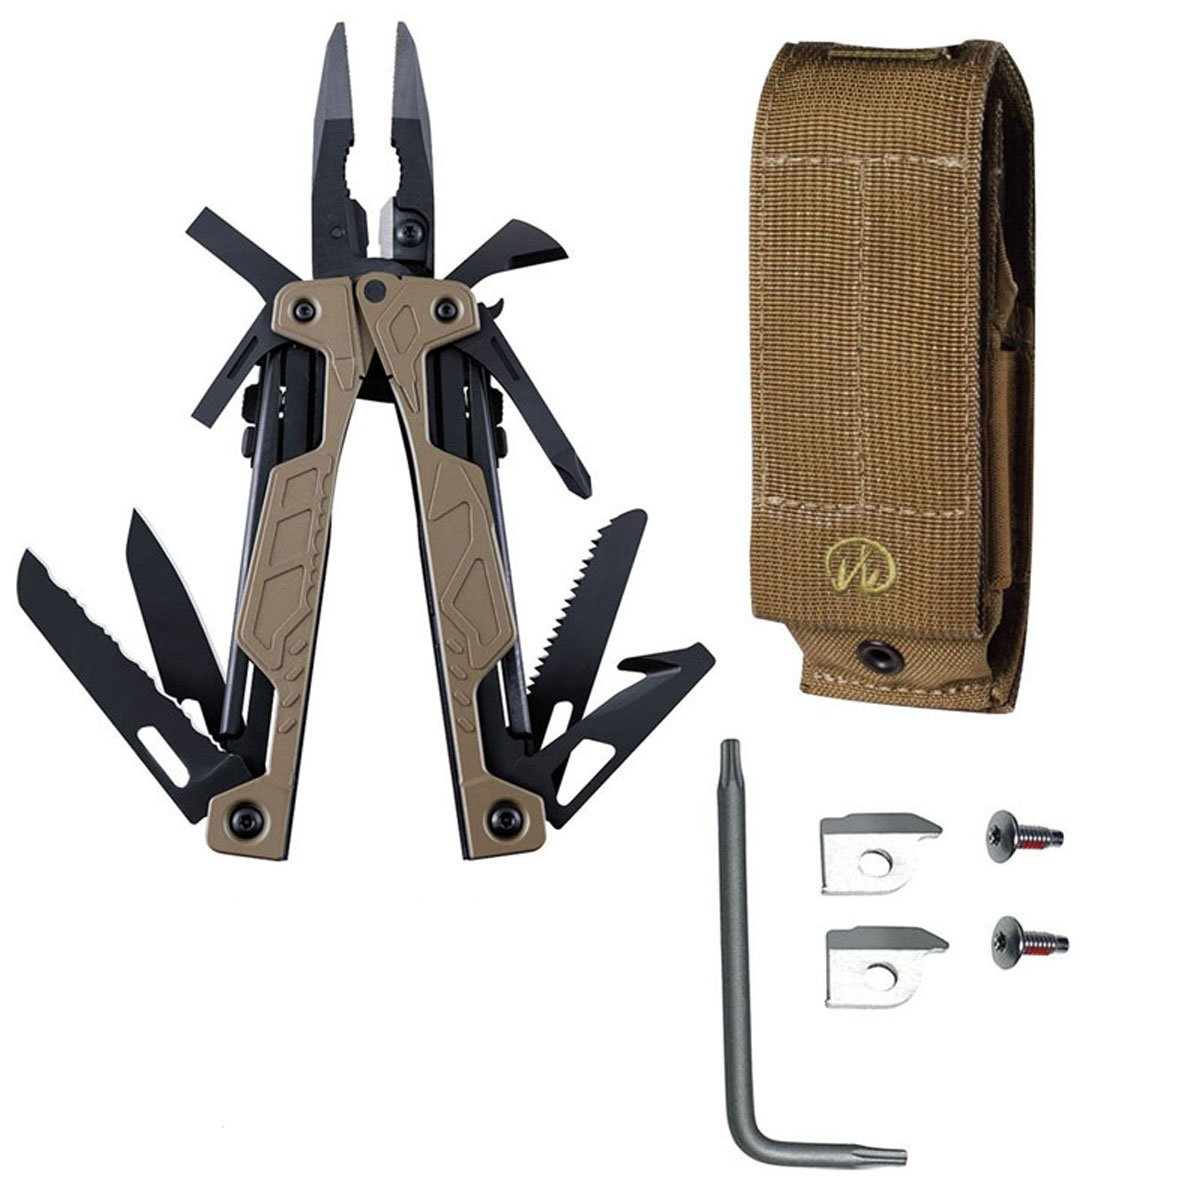 Leatherman 831626 OHT Coyote Tan Multipurpose Multi-Tool With Brown Molle Sheath + Leatherman Regular Wire Cutter Inserts